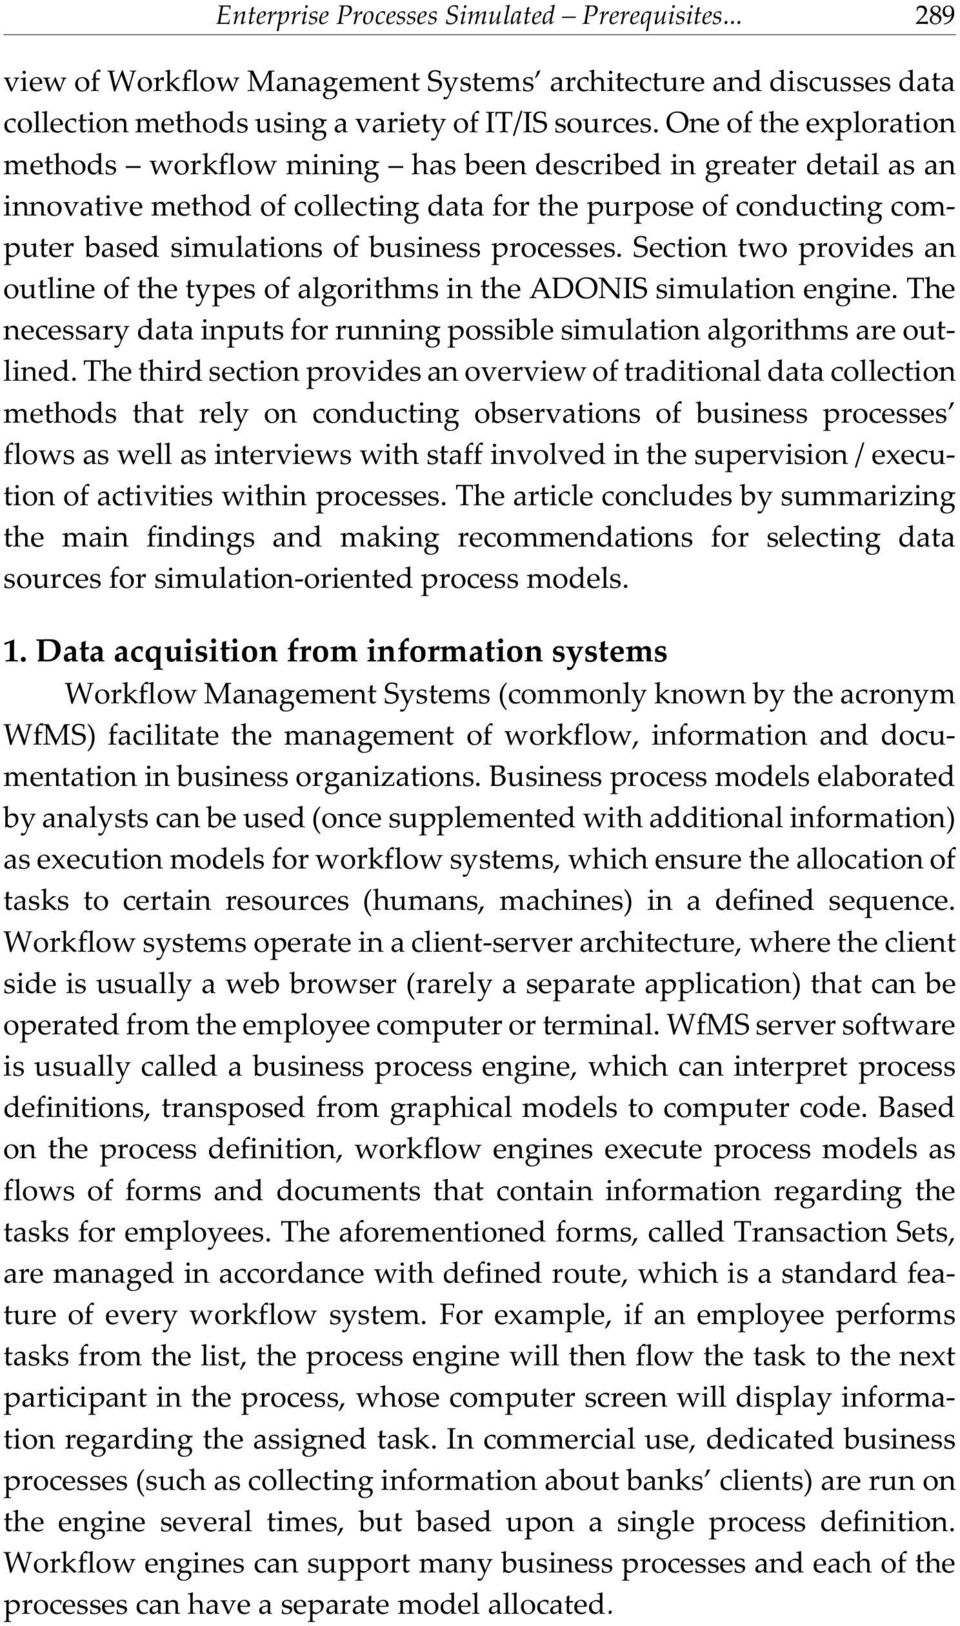 processes. Section two provides an outline of the types of algorithms in the ADONIS simulation engine. The necessary data inputs for running possible simulation algorithms are outlined.